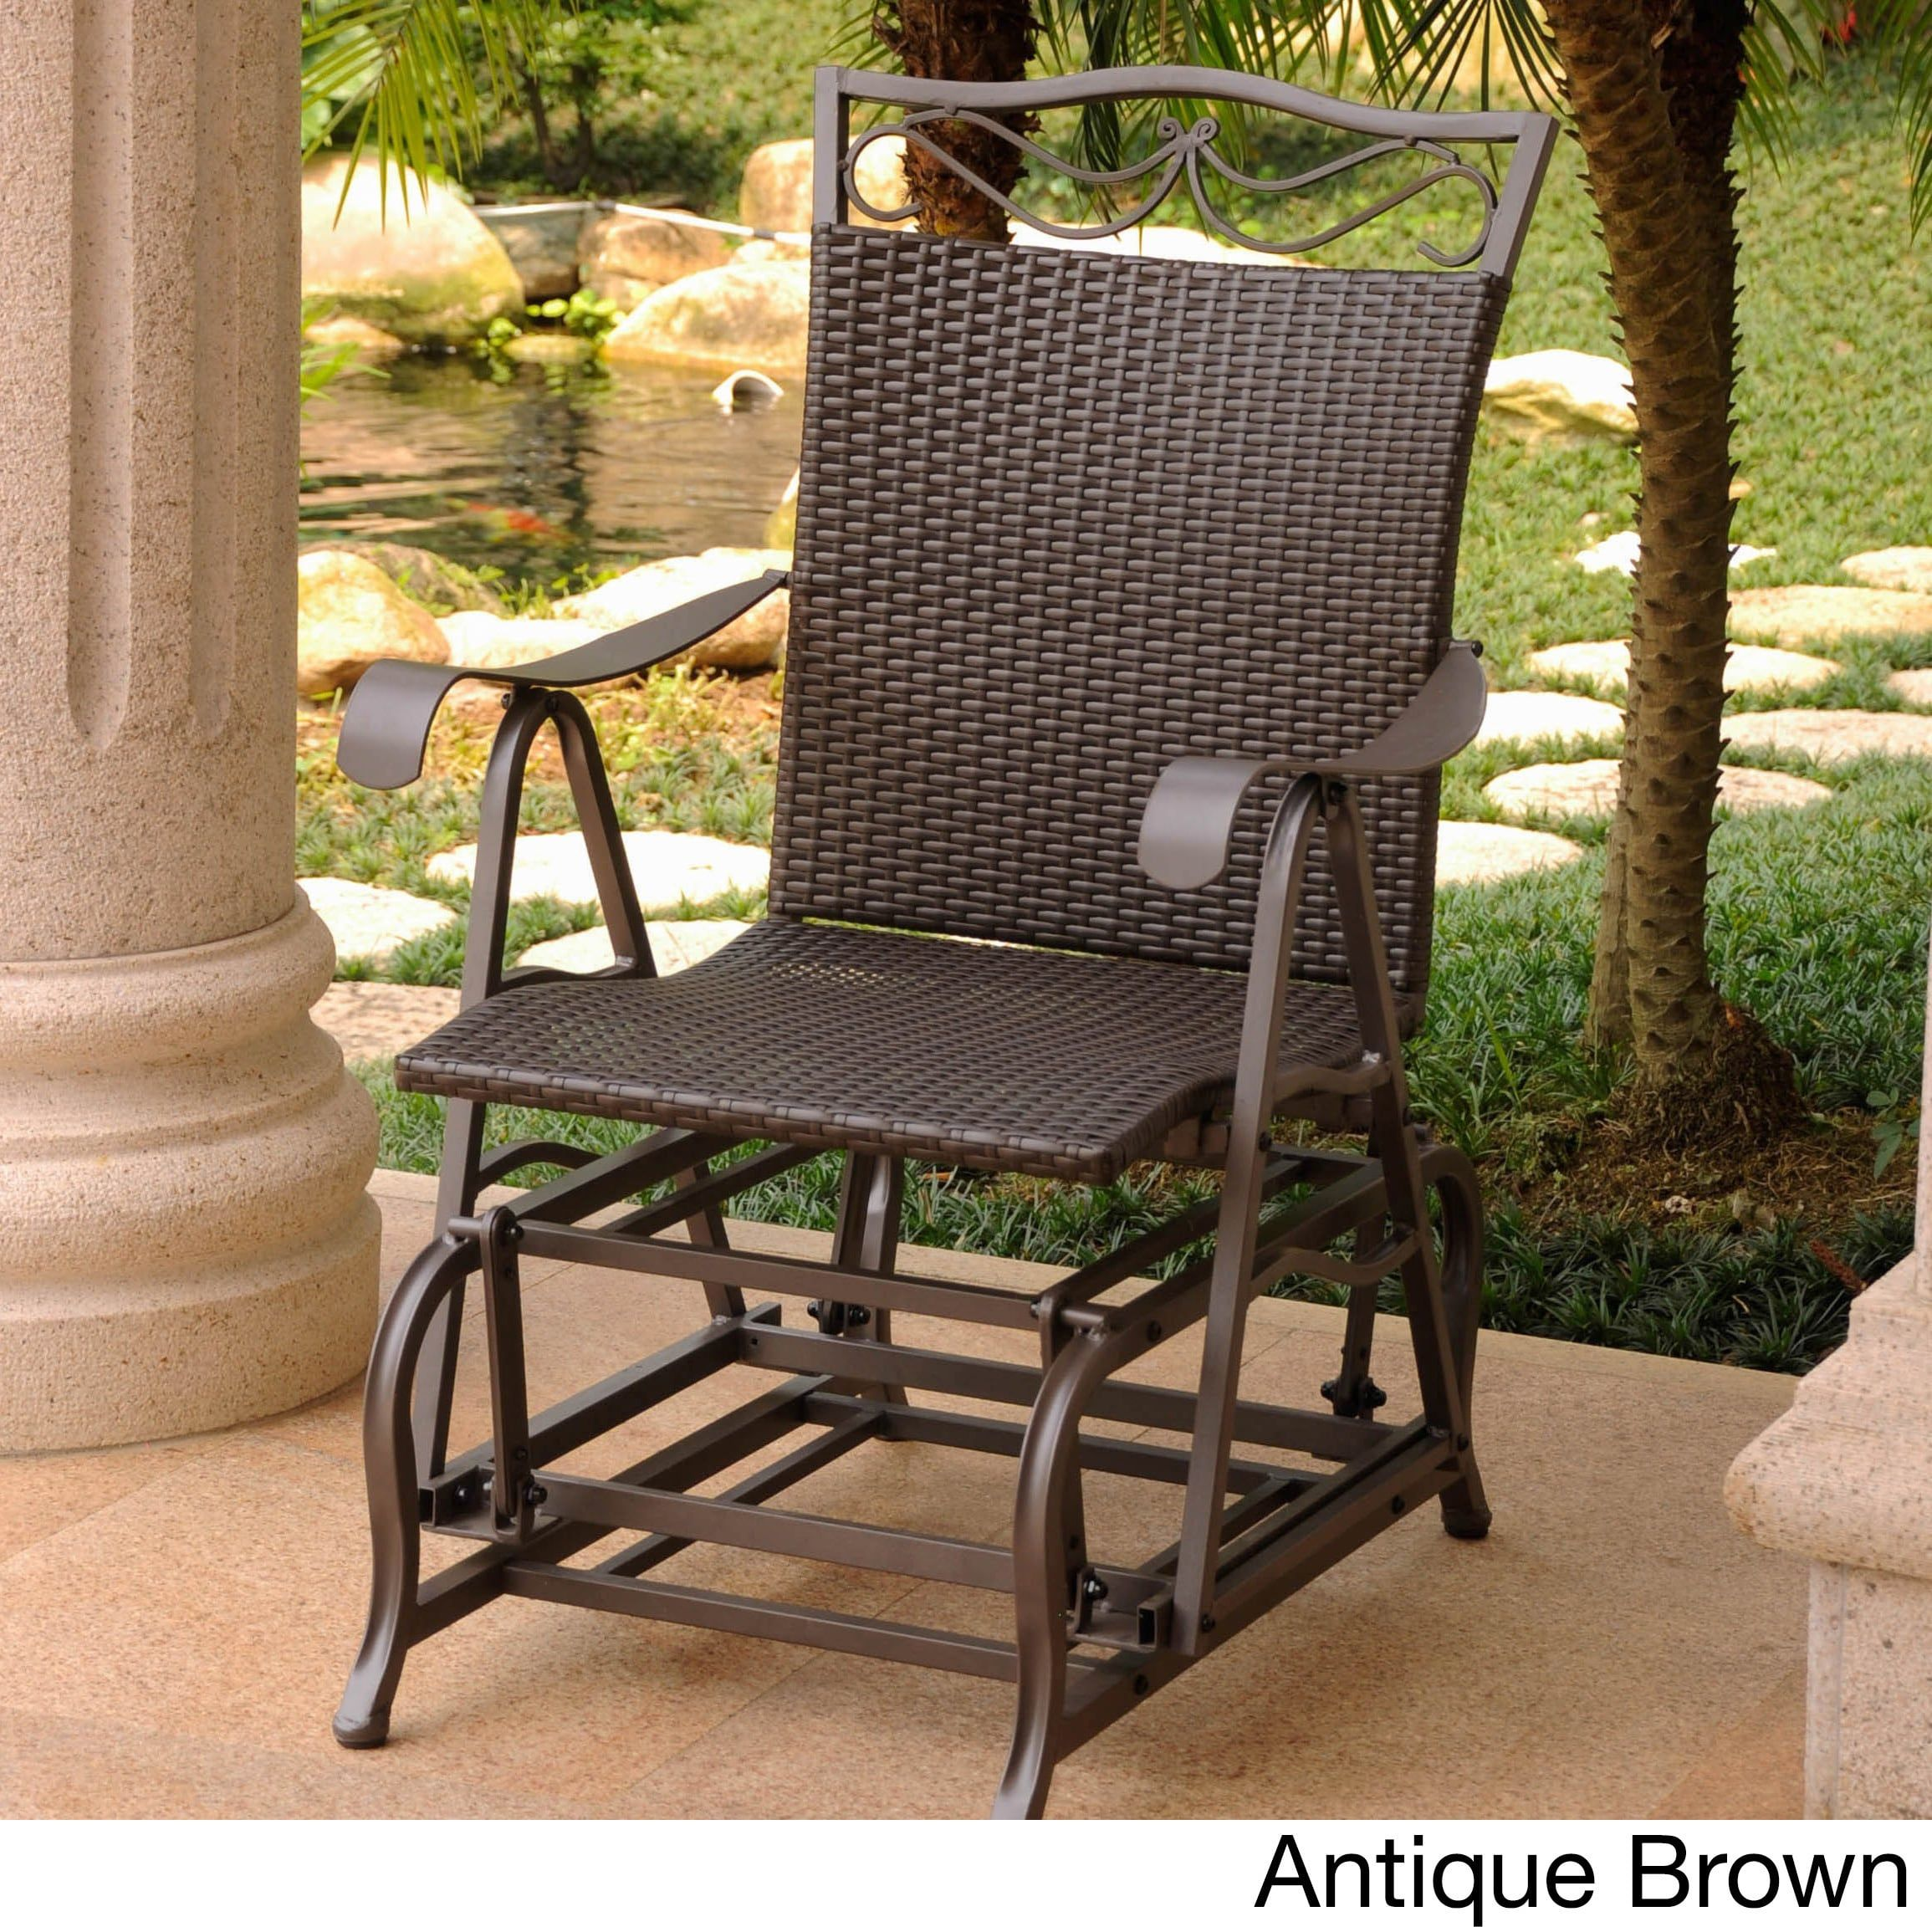 Single Glider Patio Chairs Wherearethebonbons